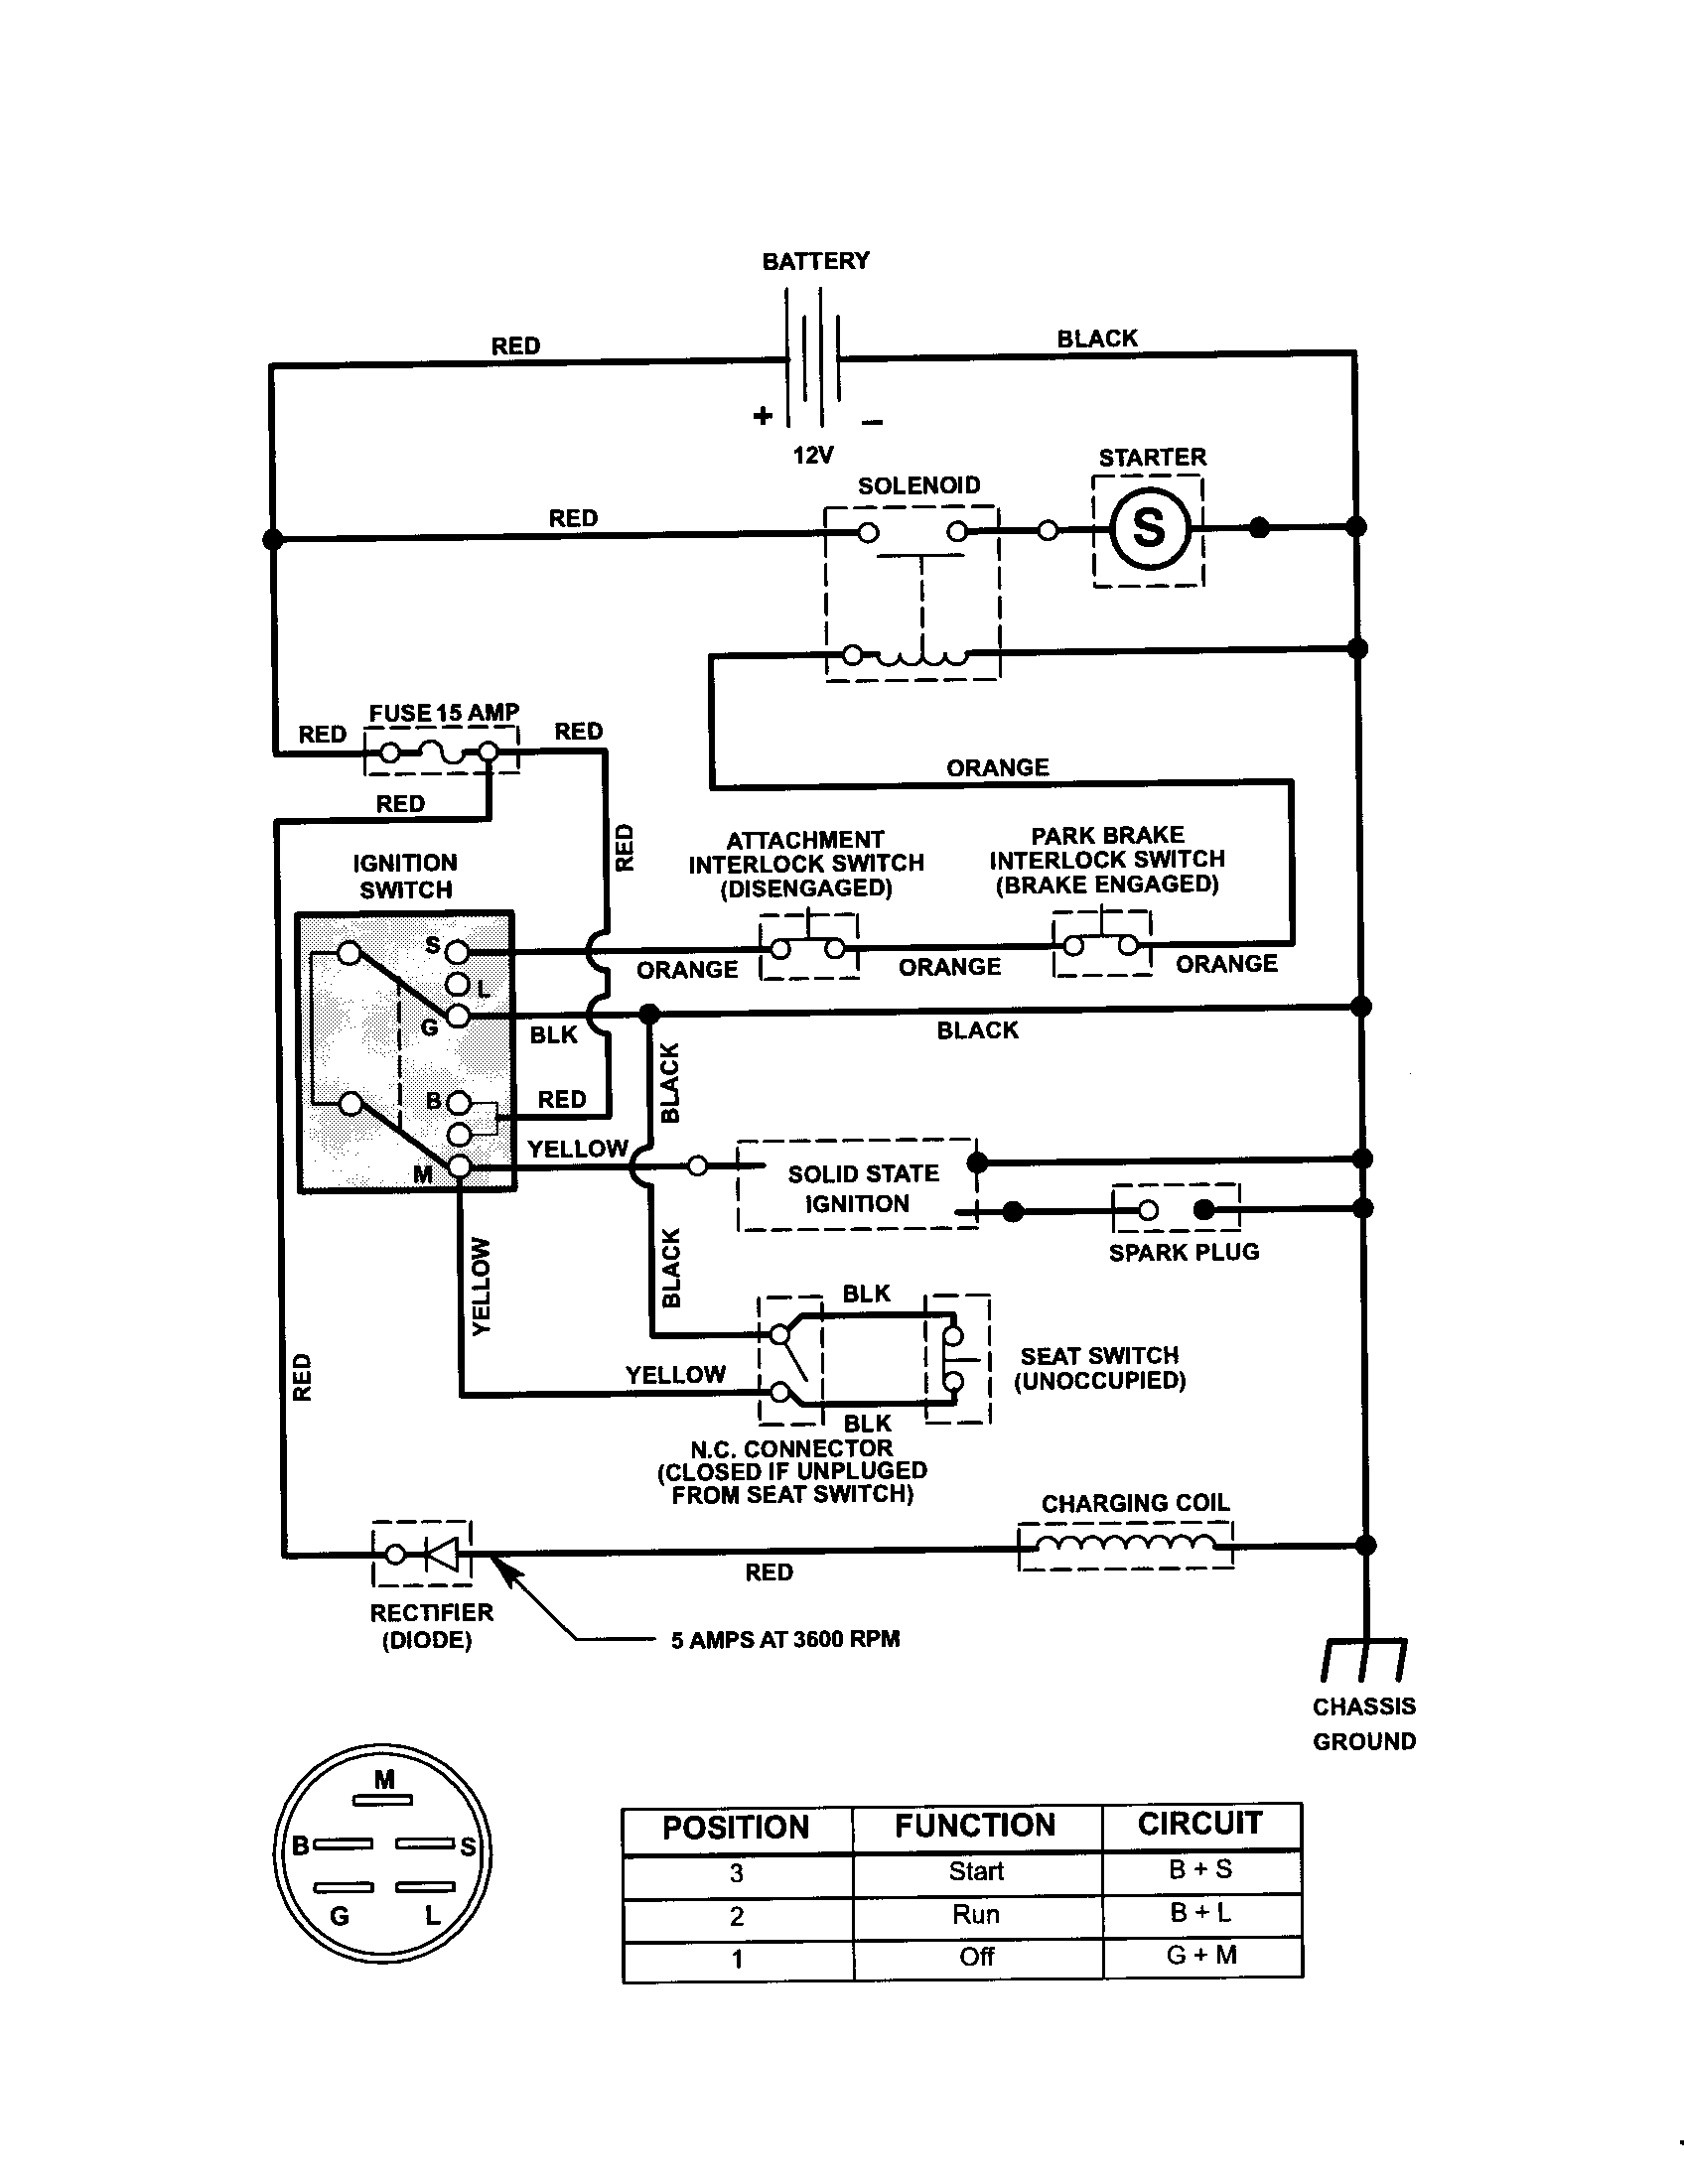 1b4fc64e2bcb7b381848942ff5c84dce craftsman riding mower electrical diagram pictures of craftsman sears tractor wiring diagram at eliteediting.co